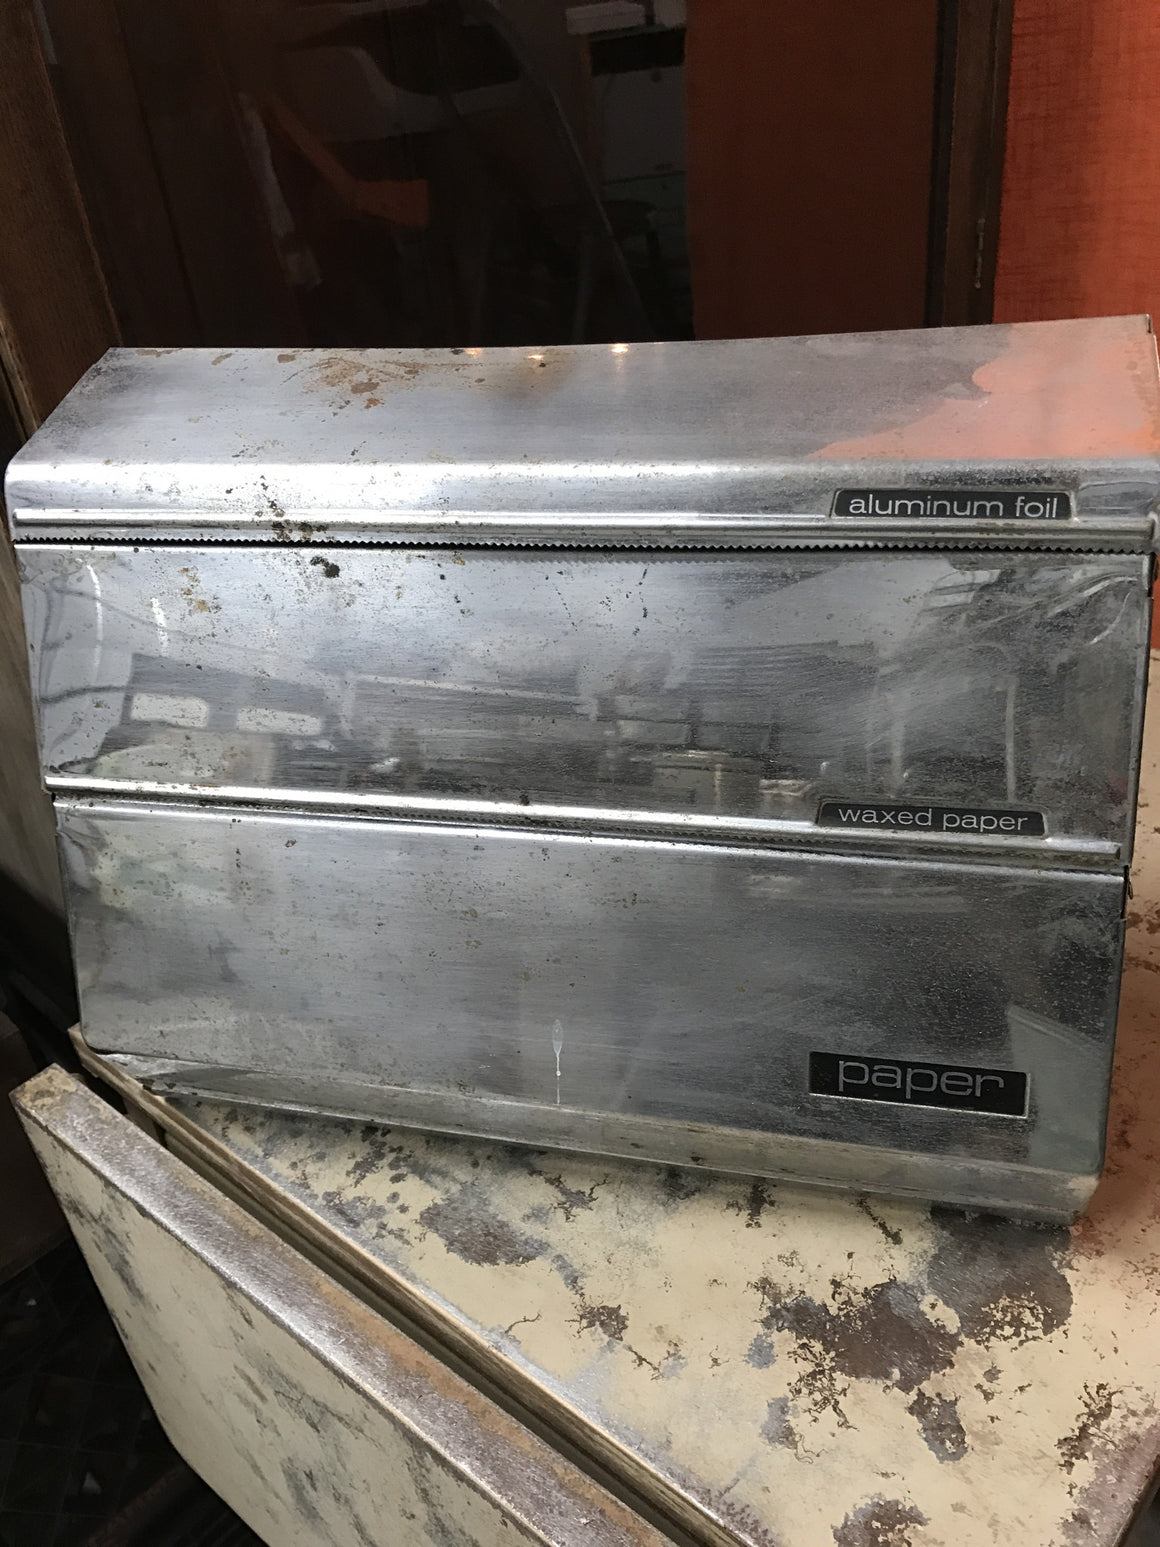 Mid-Century Foil, Waxed Paper and Paper Towel Dispenser - VINTAGE JOURNEY MARKET - Upcycling & Restoration